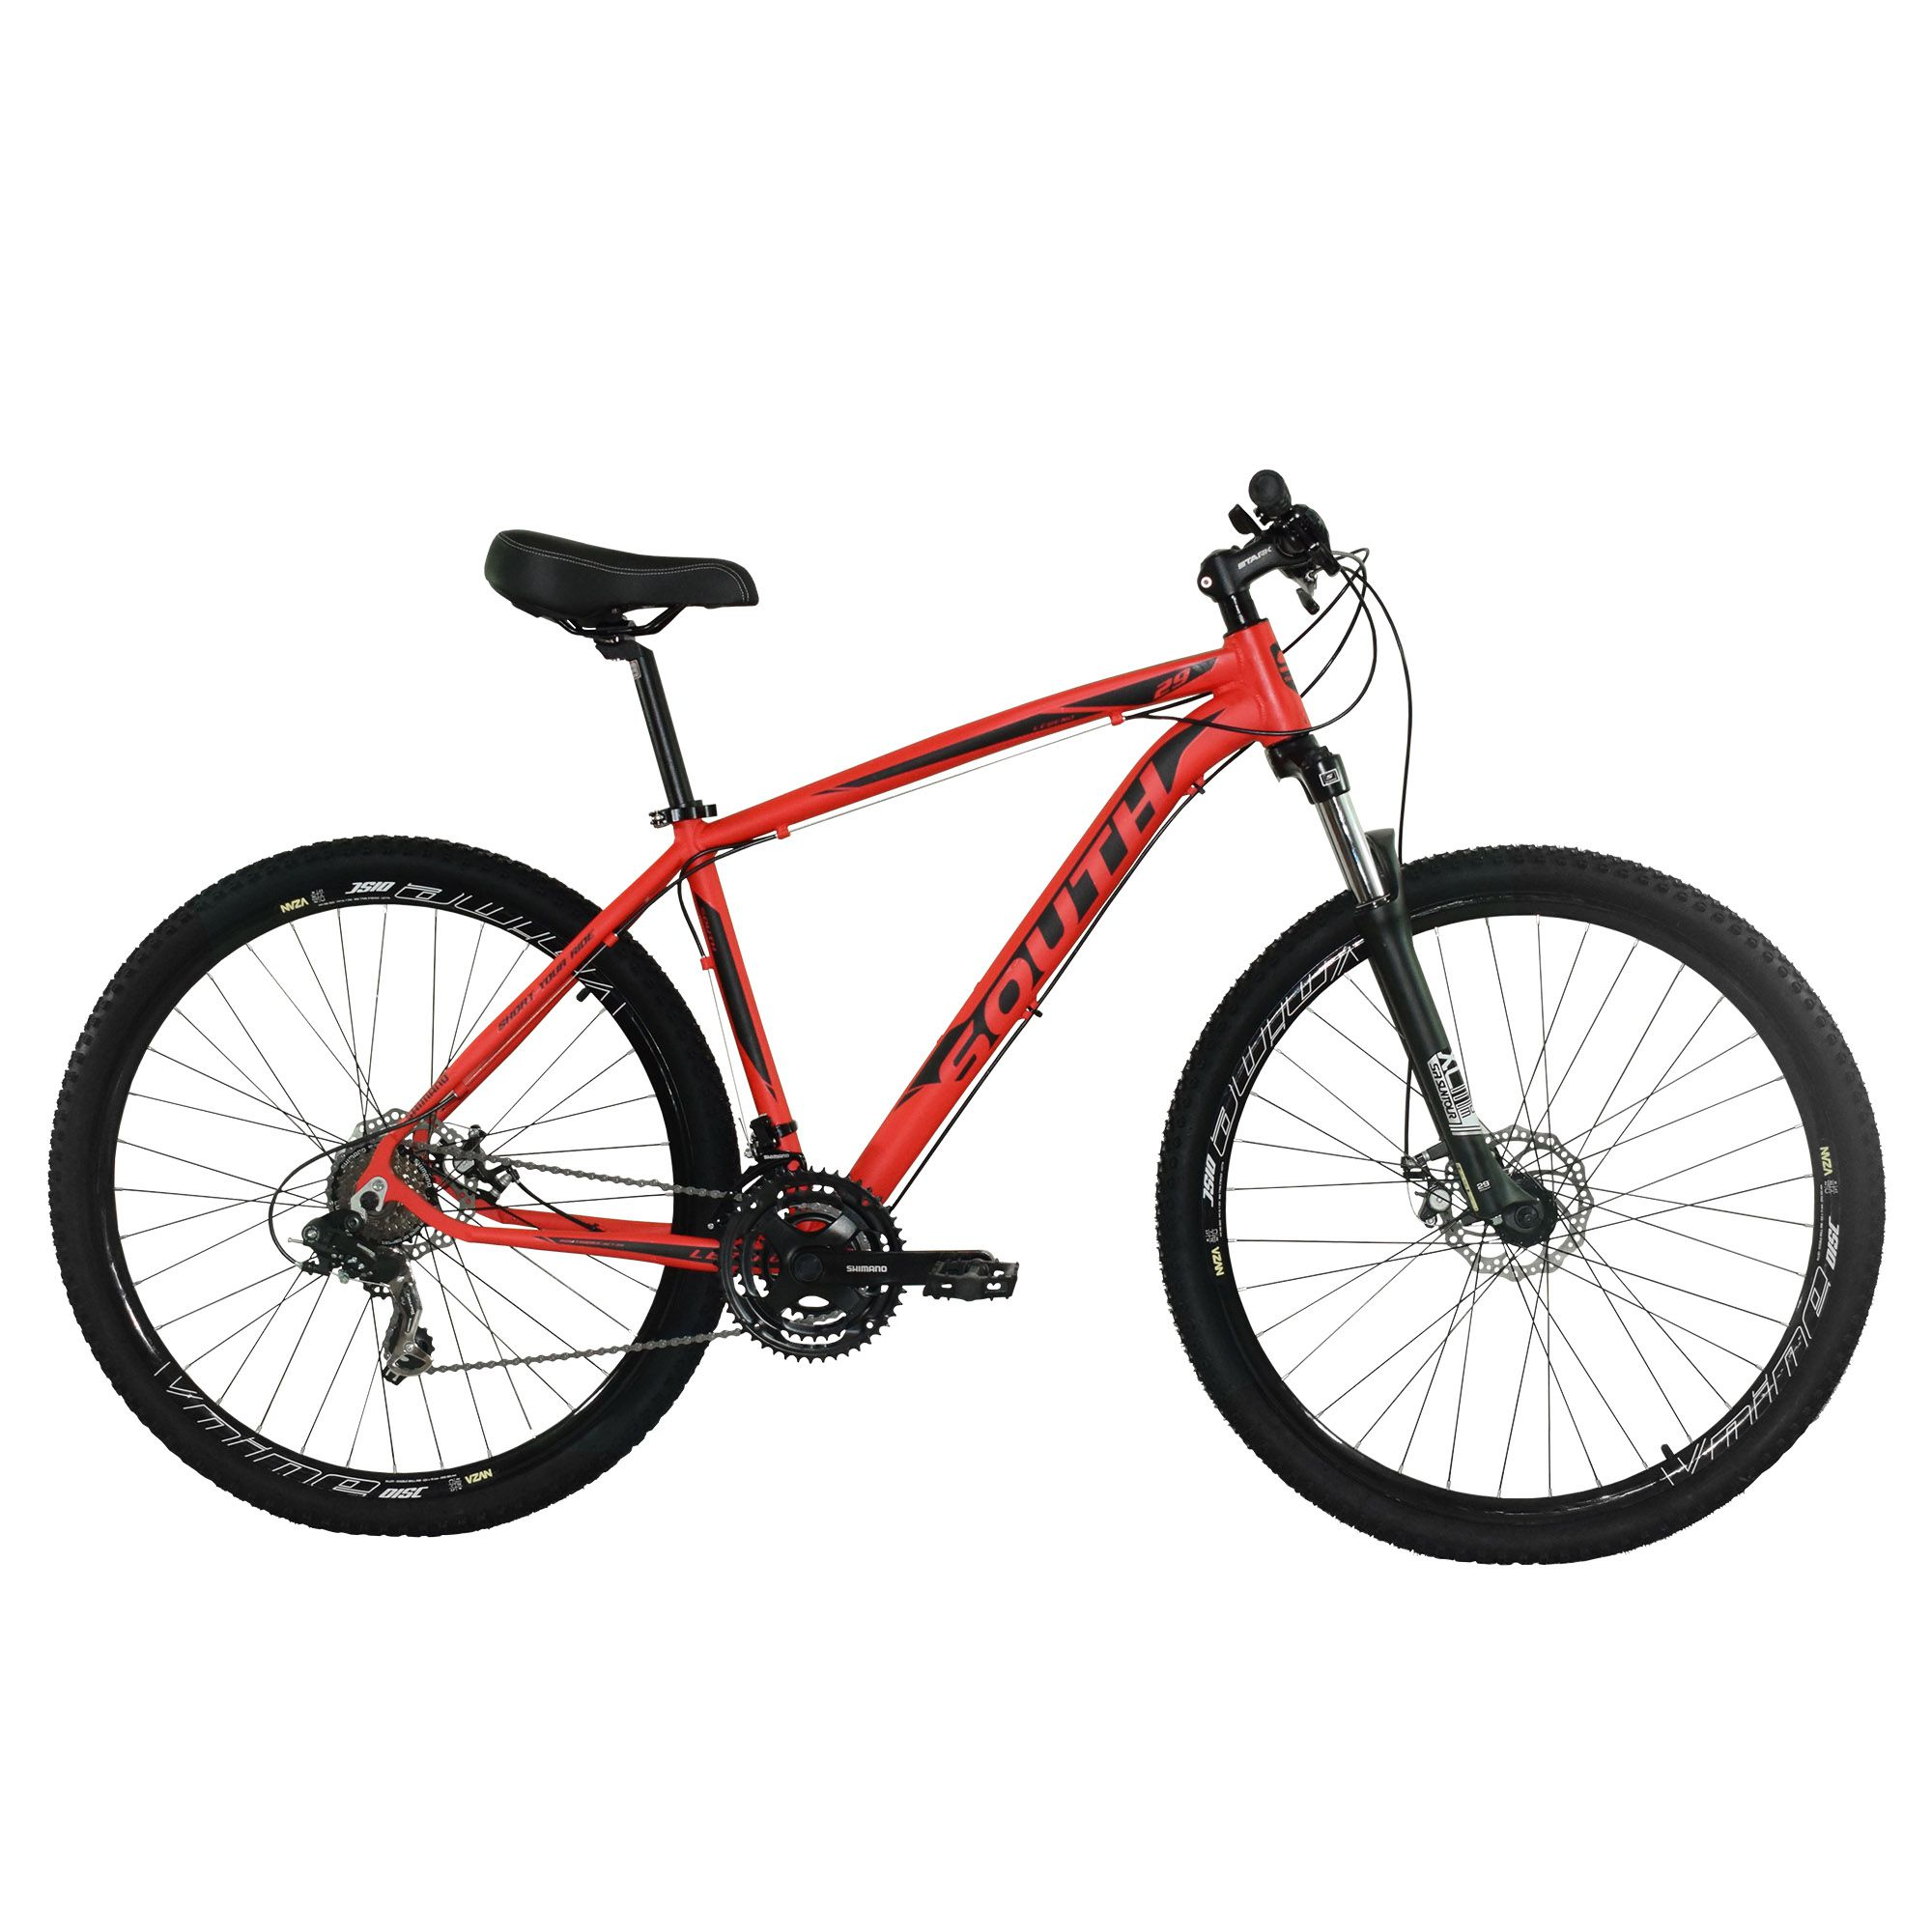 Bicicleta South Legend 2018 - 21 Marchas - Shimano - Suspensão 100mm - Aluminio